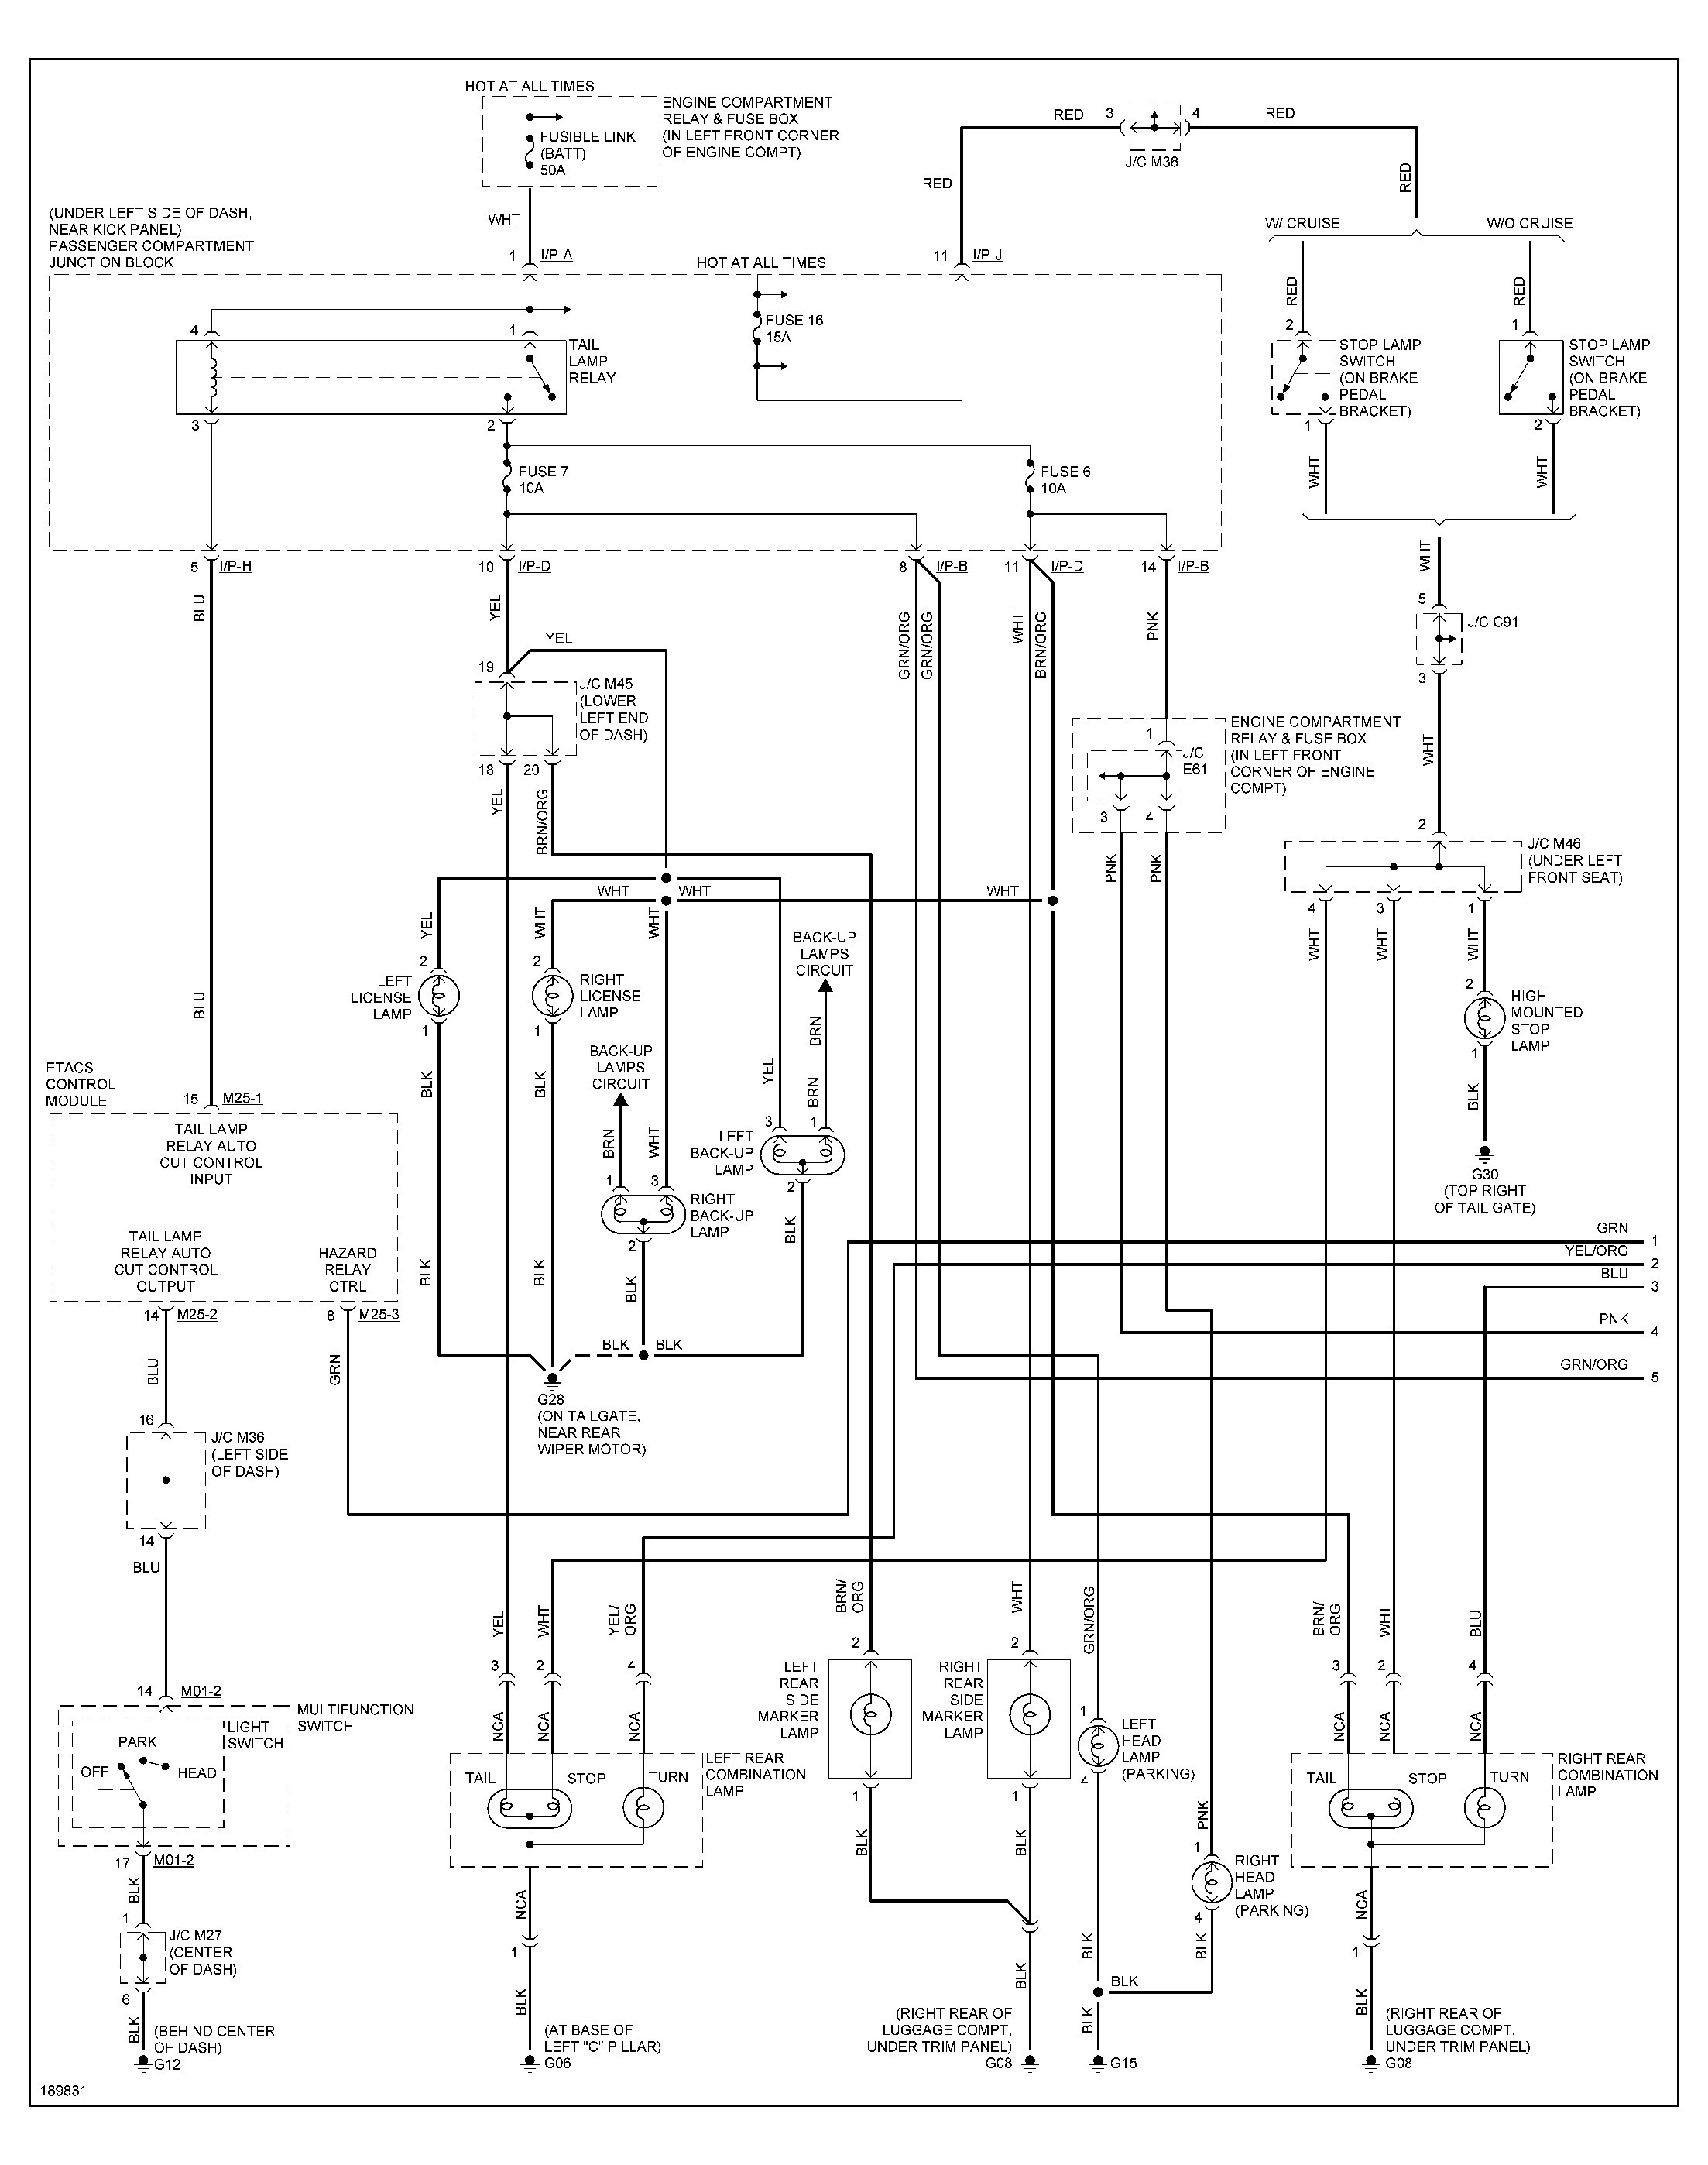 Hyundai Entourage Ac Diagram Guide And Troubleshooting Of Wiring 2007 Fuse Box Accent Schematic Library Kia Sedona